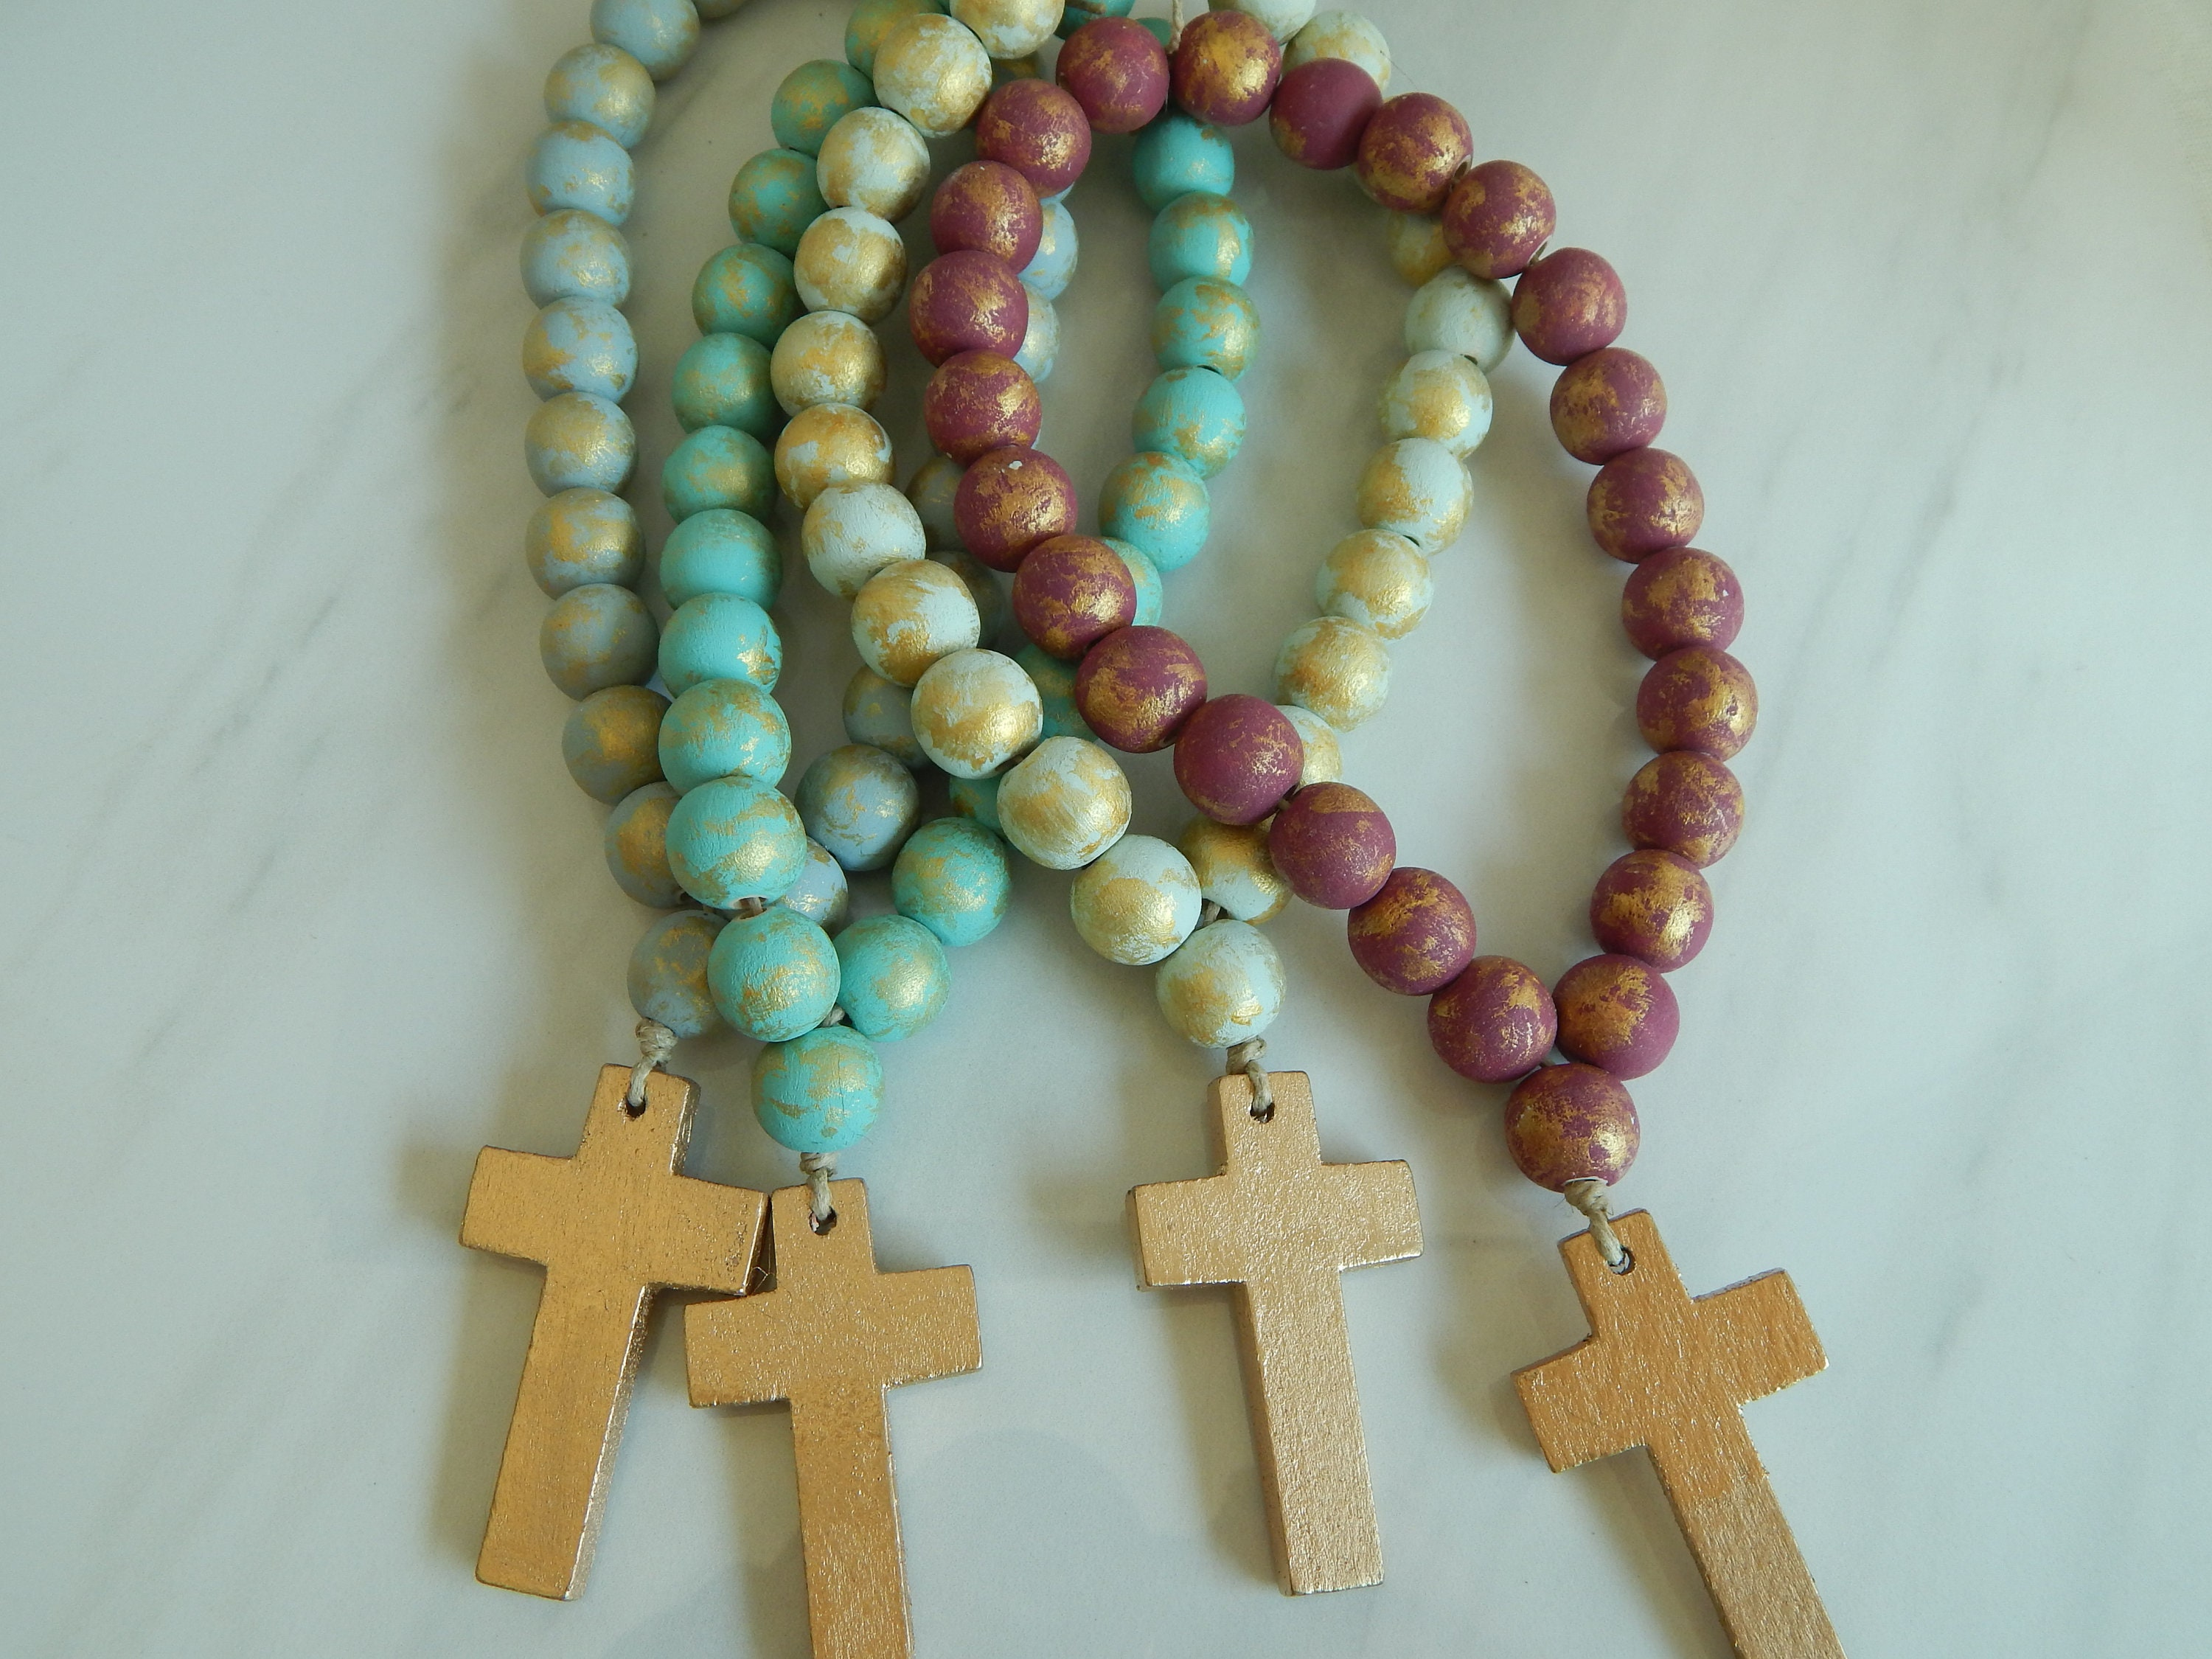 Ready To Ship Wood Loop Garland With Wood Cross Jewelry For The Home Beach Home Vase Decor